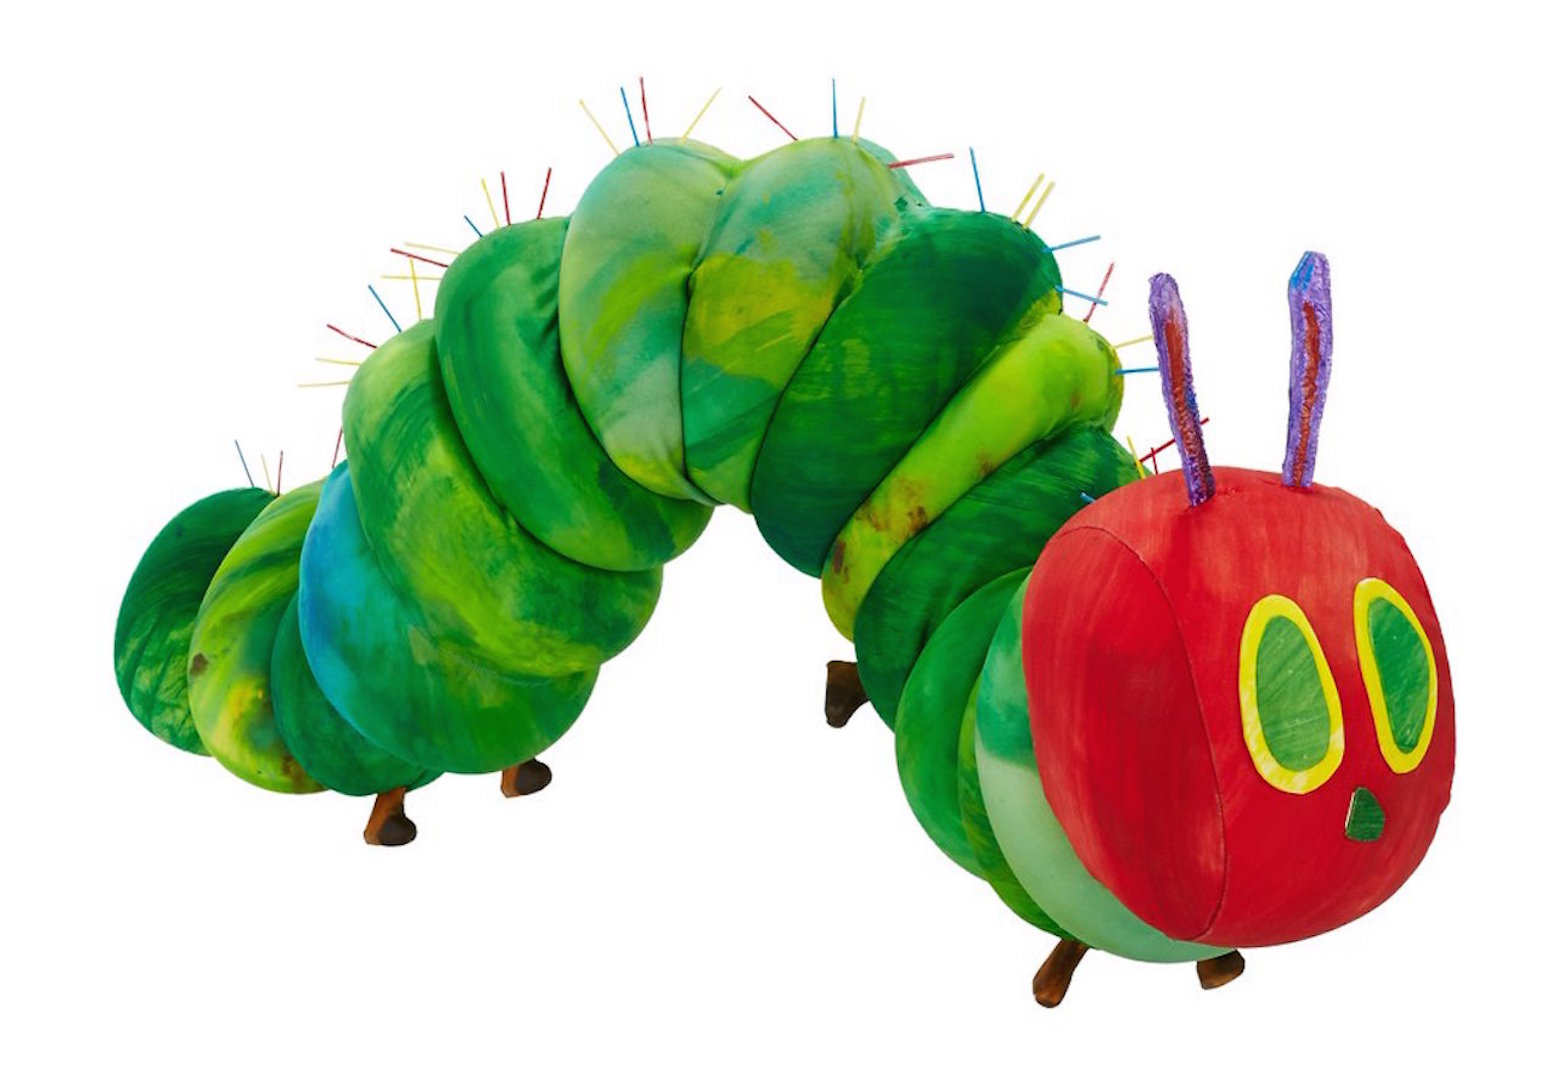 The Very Hungry Caterpillar Show Experience.